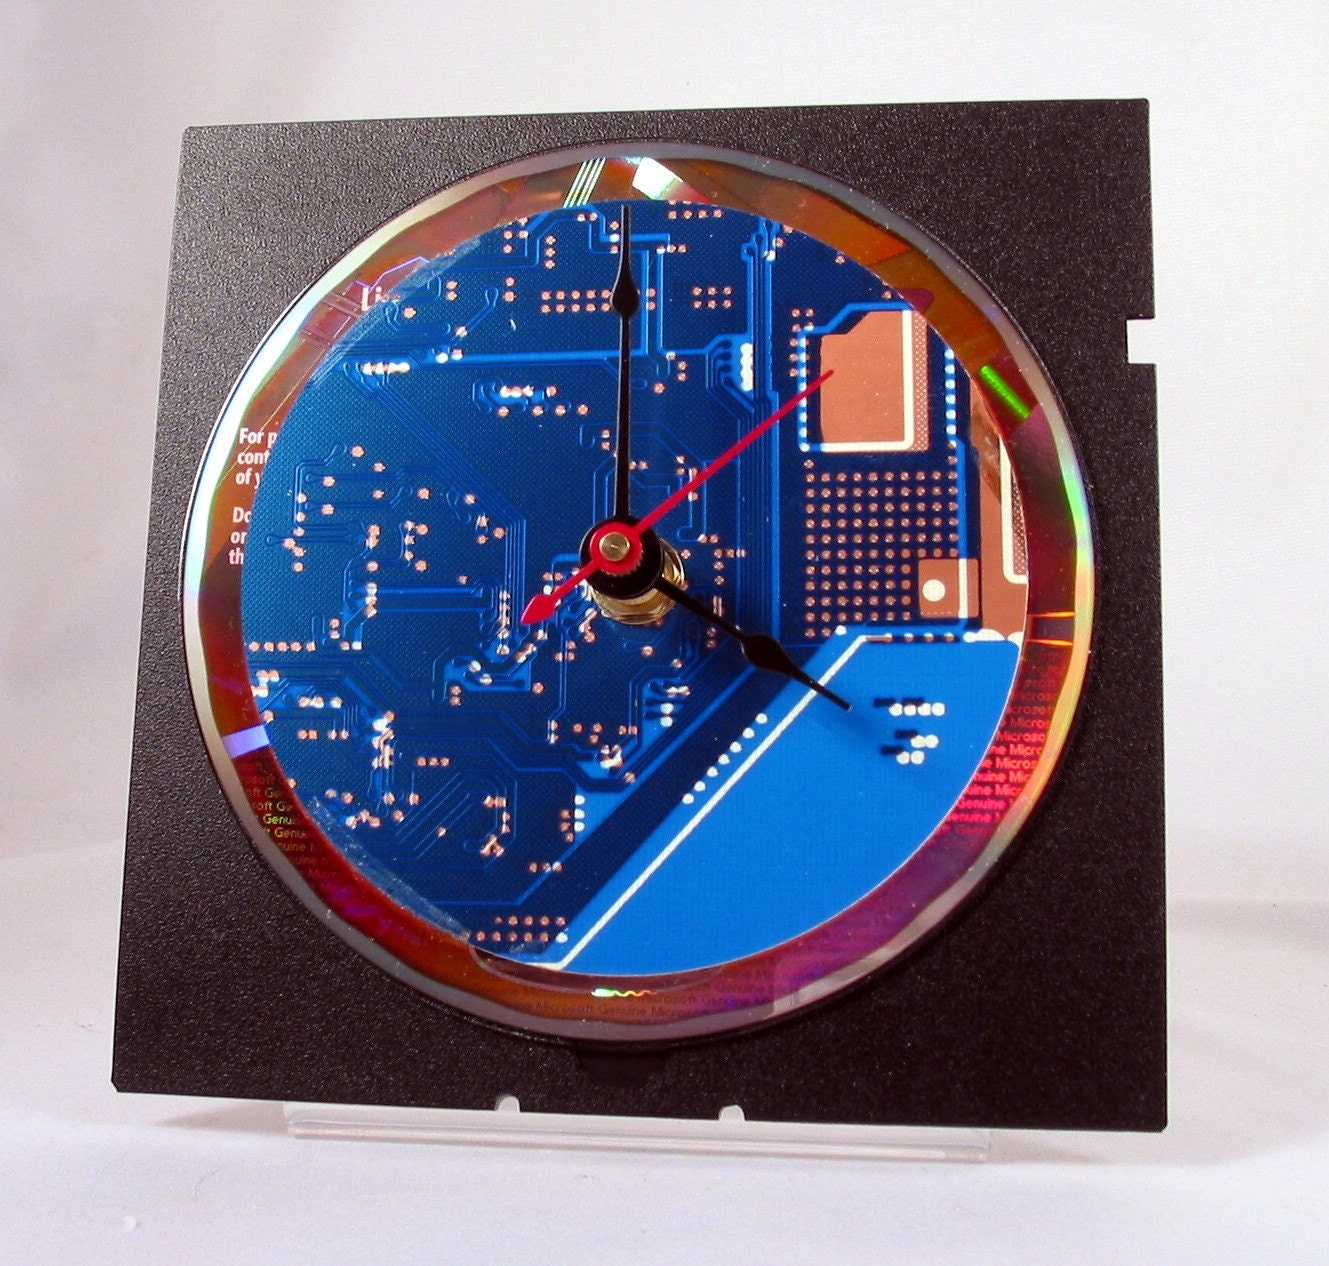 Computer Circuit Board Desk Clock Blue Green Picture Frame By Robyriker Zoom